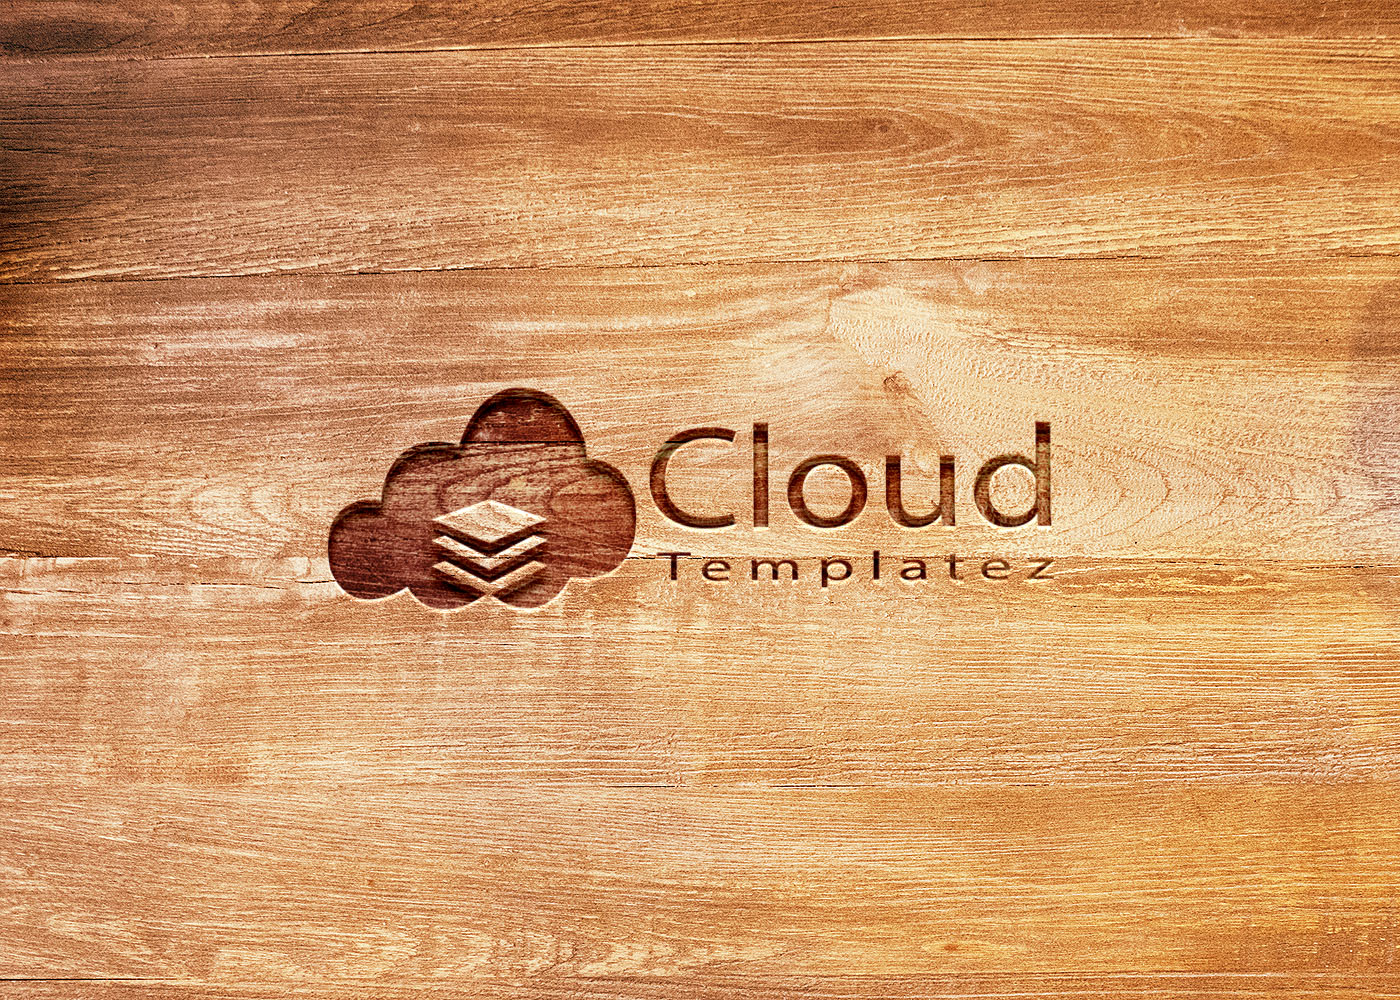 Carved Wood Logo Mockup Psd Free Cloud Templatez All